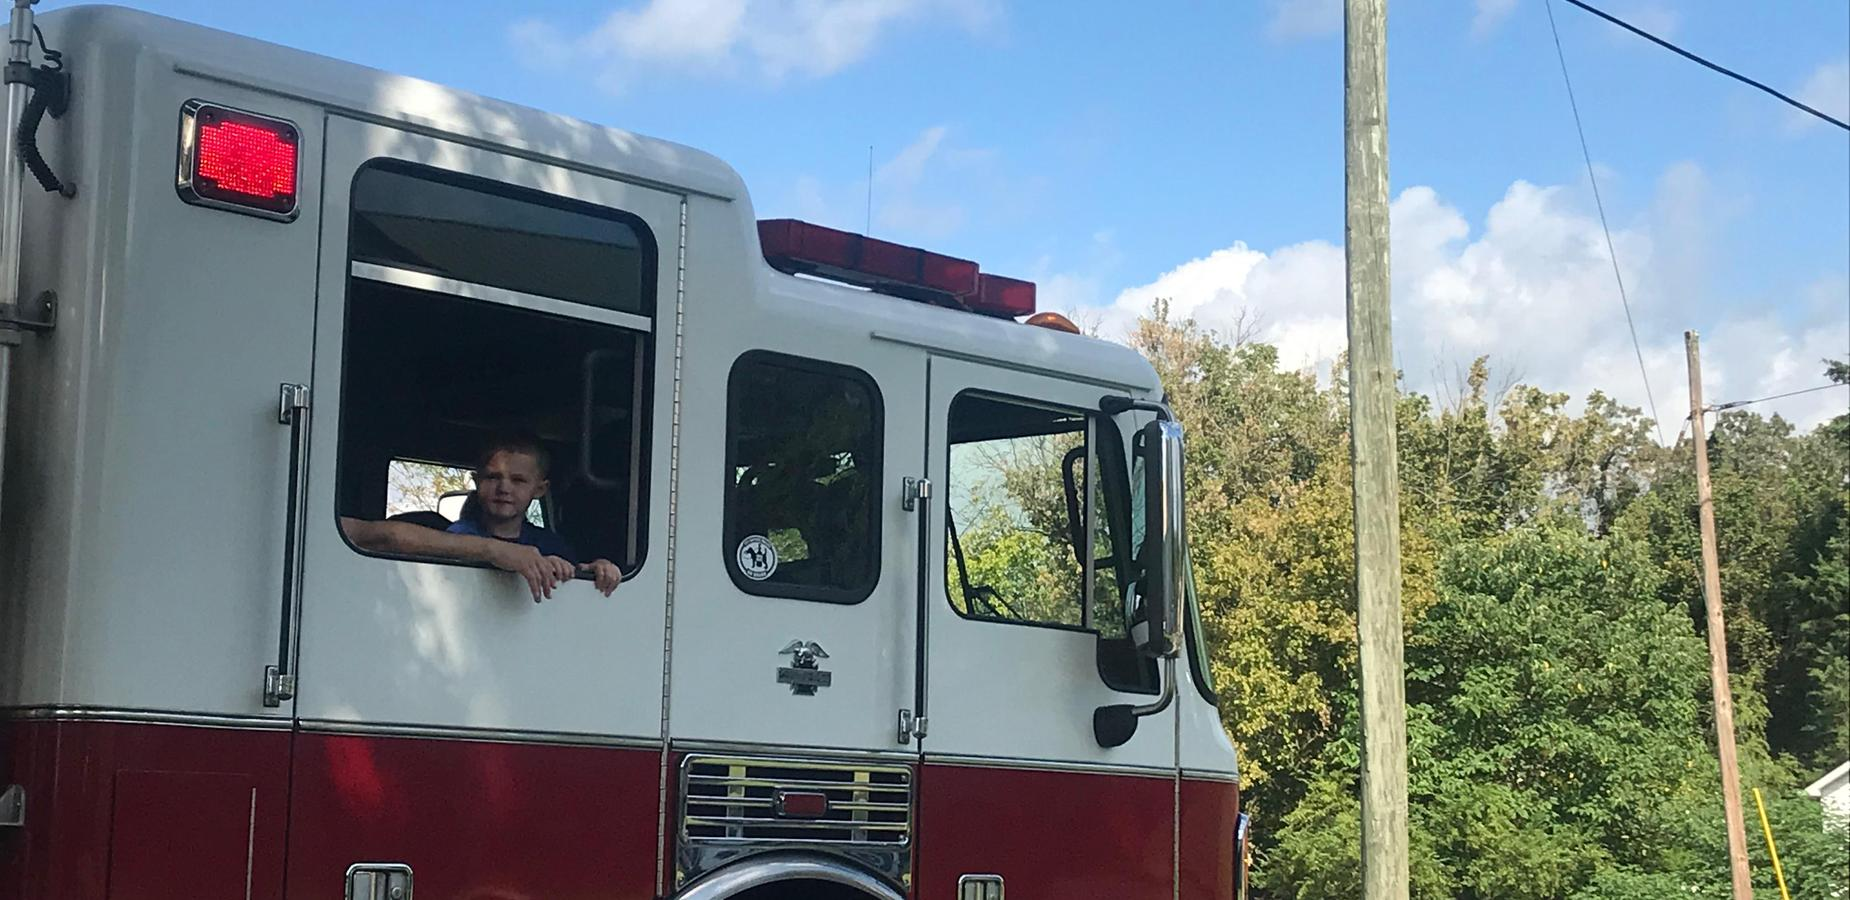 Riding in the firetruck in the parade.